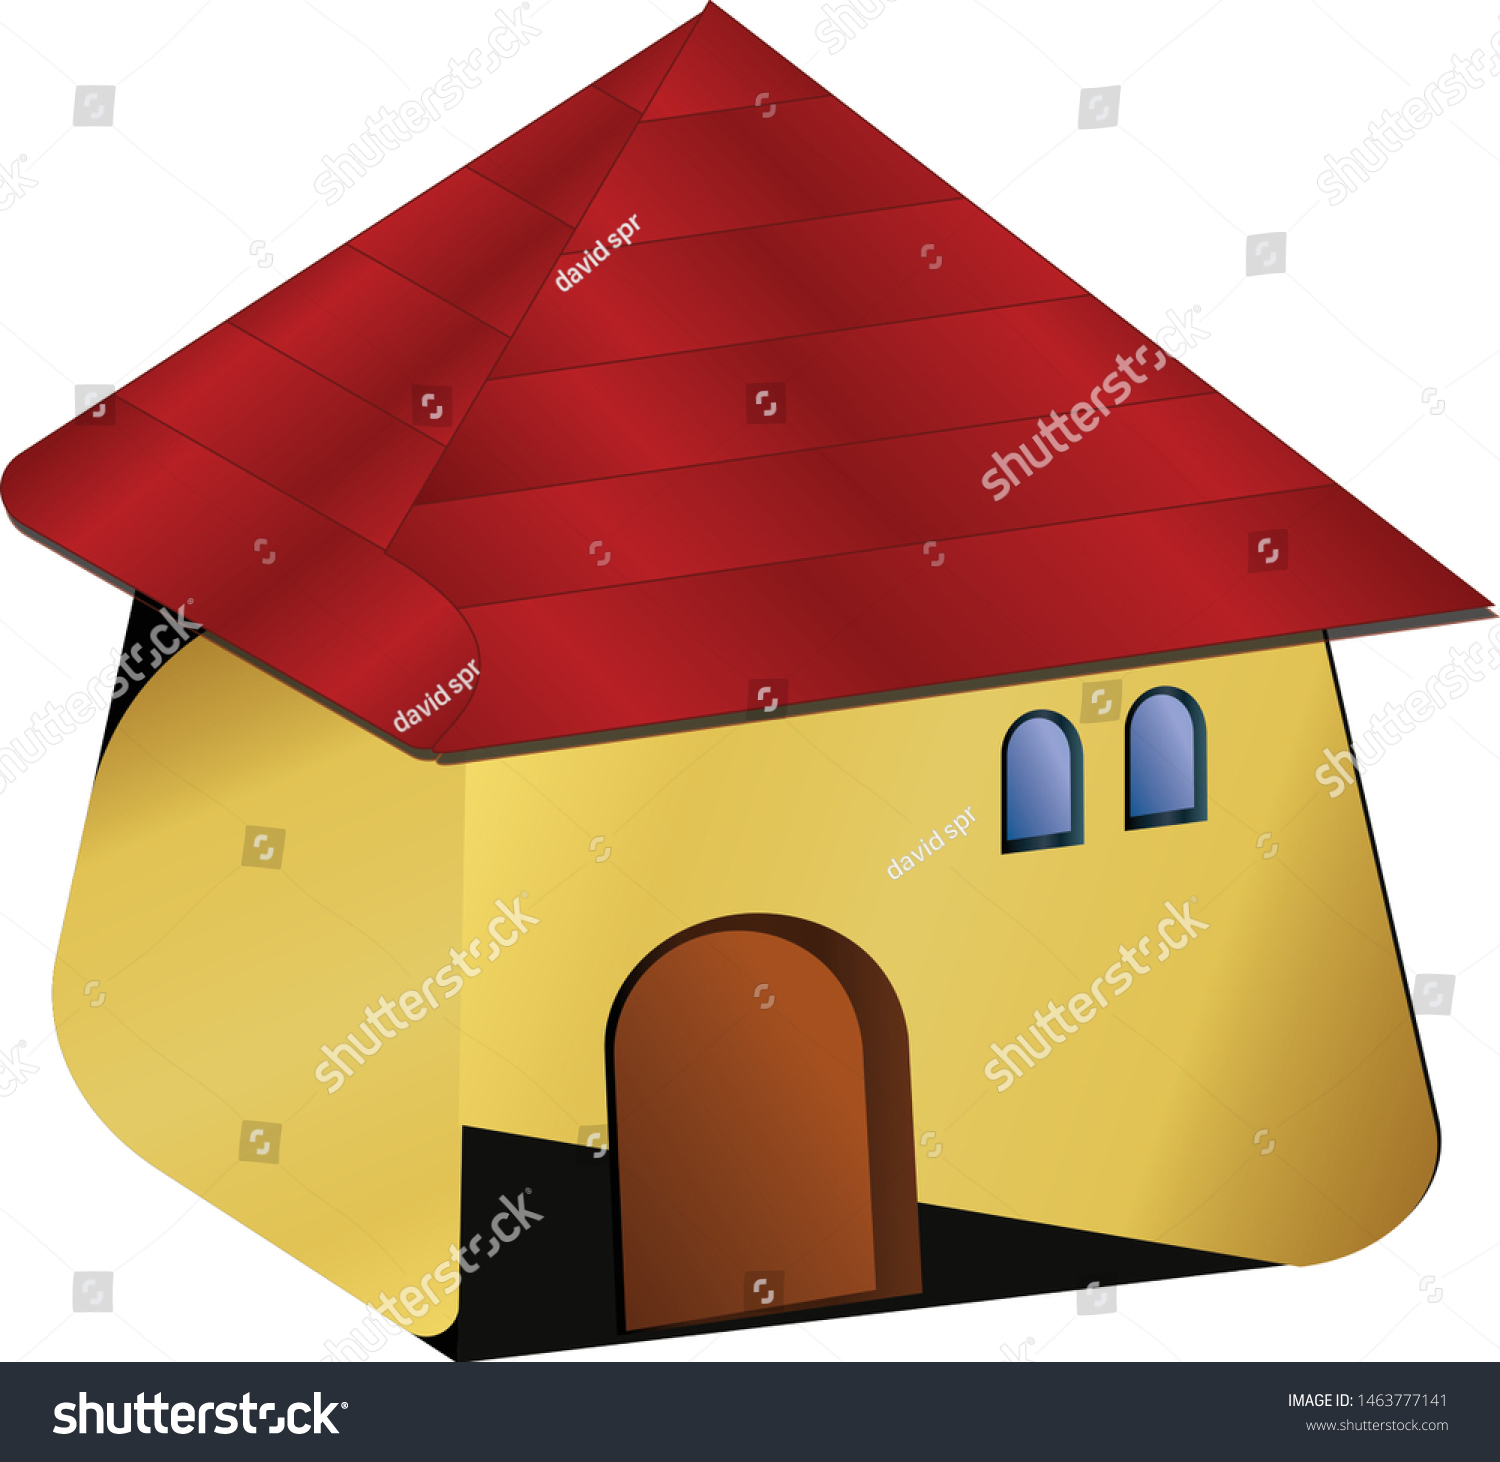 stock-vector-a-house-with-a-red-roof-iso